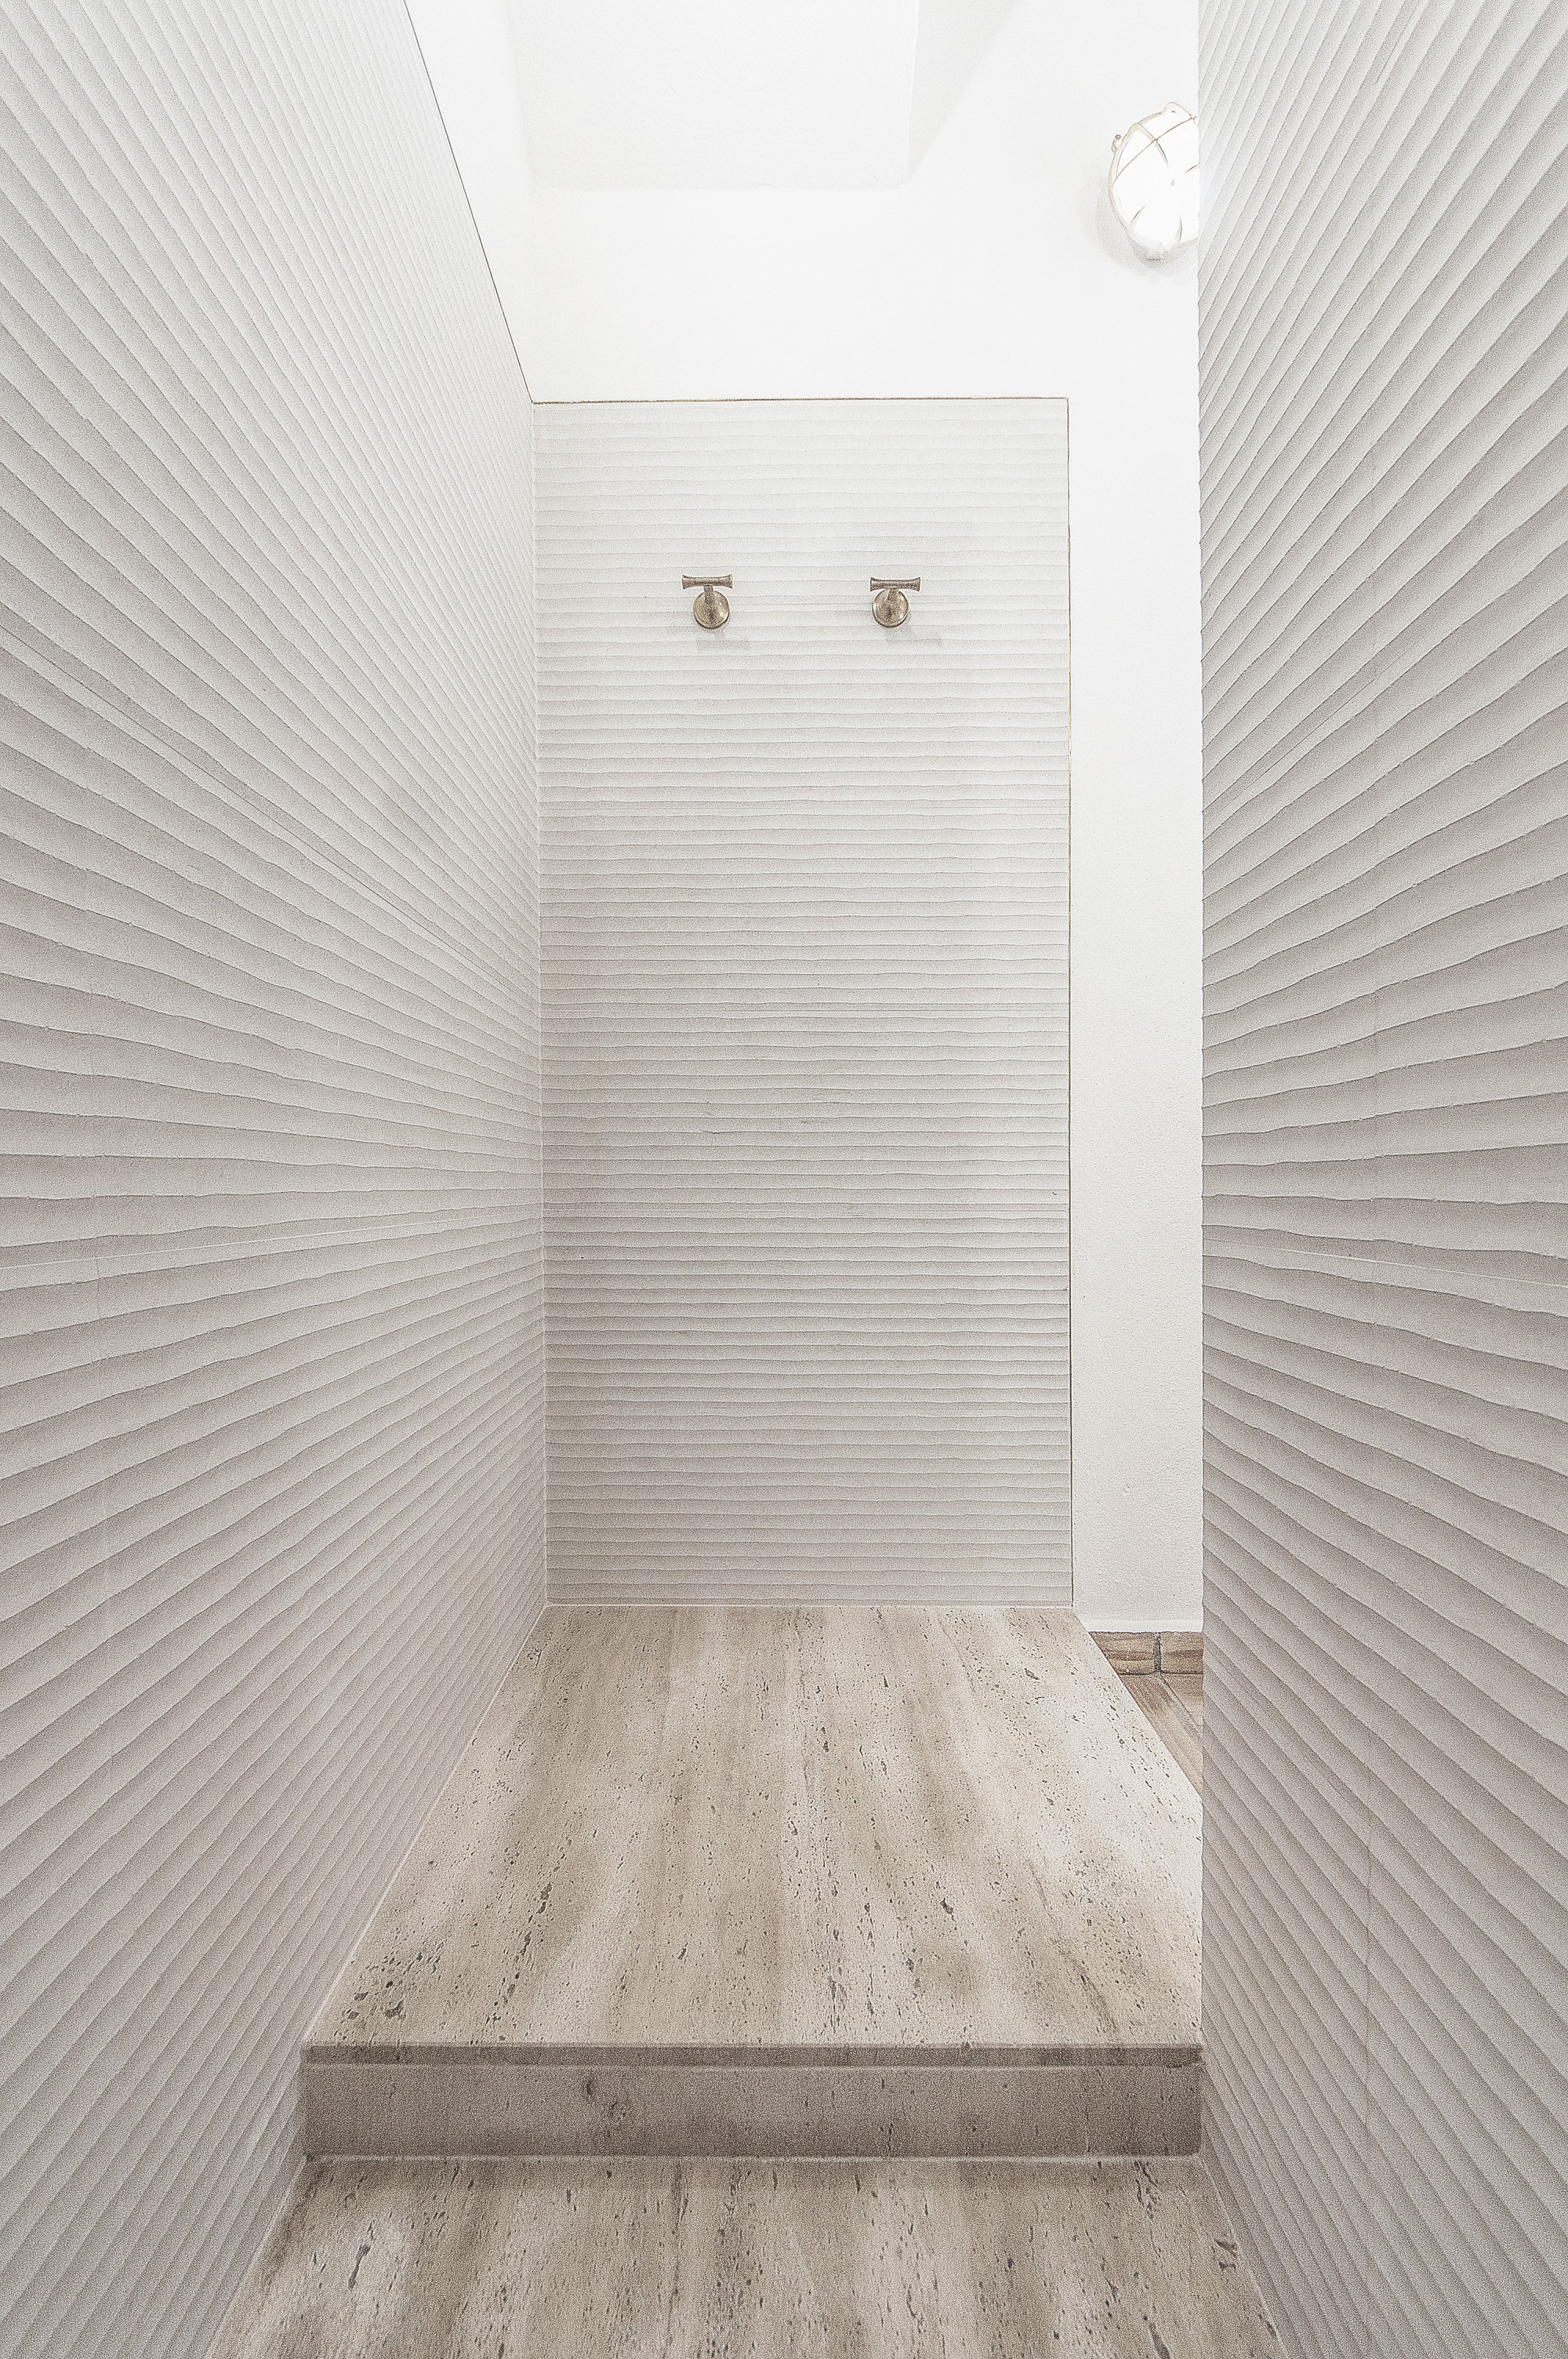 One-piece, solid travetino stone shower base